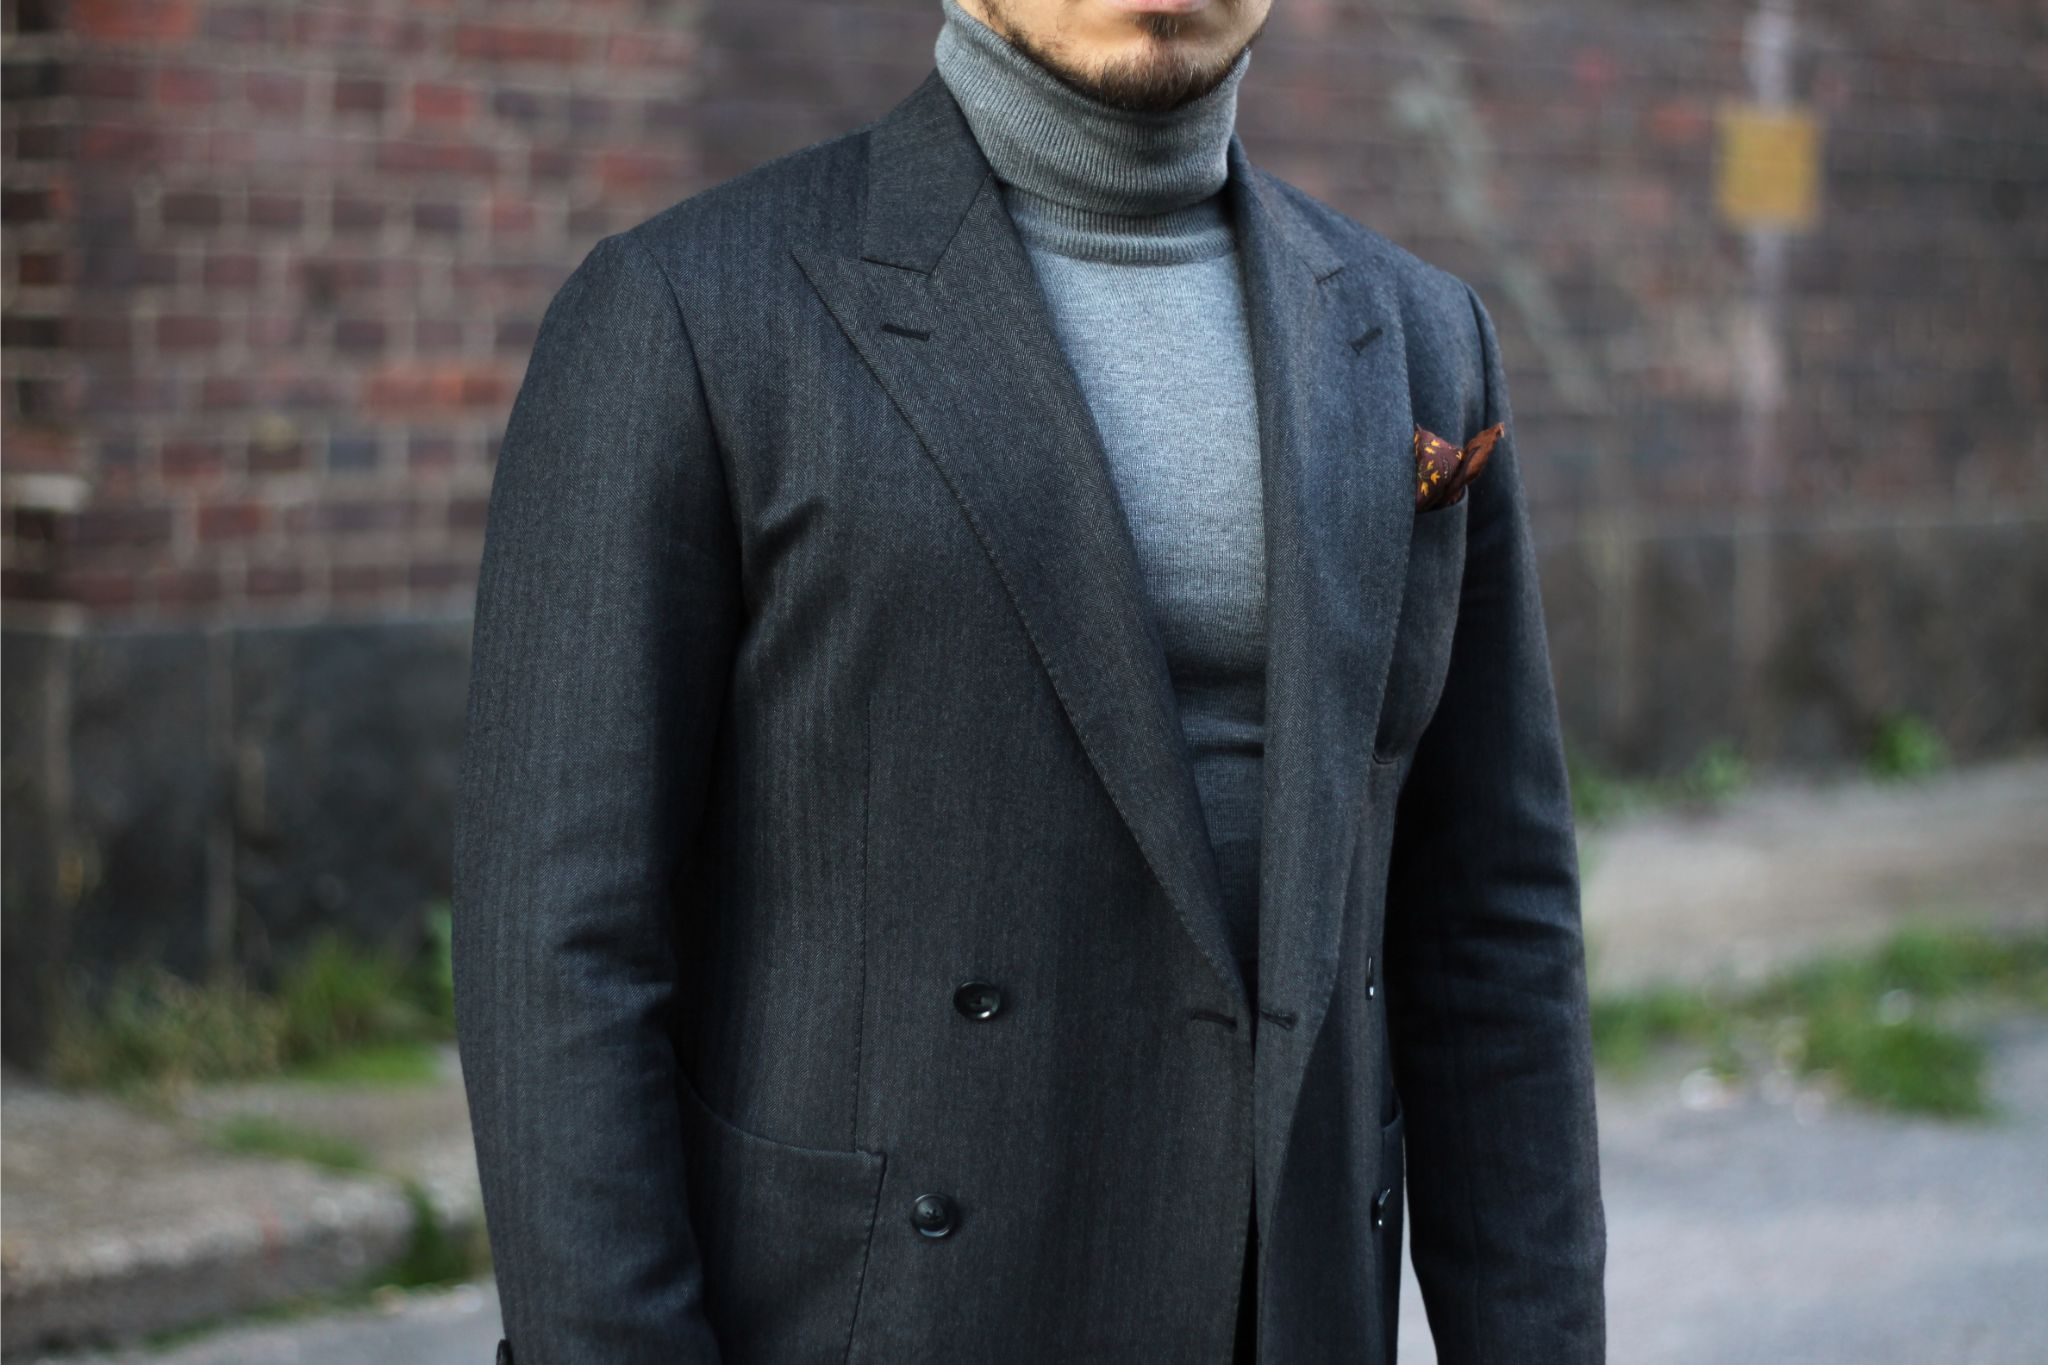 How to dress down a suit - light gray roll neck sweater with mid-gray herringbone wool suit